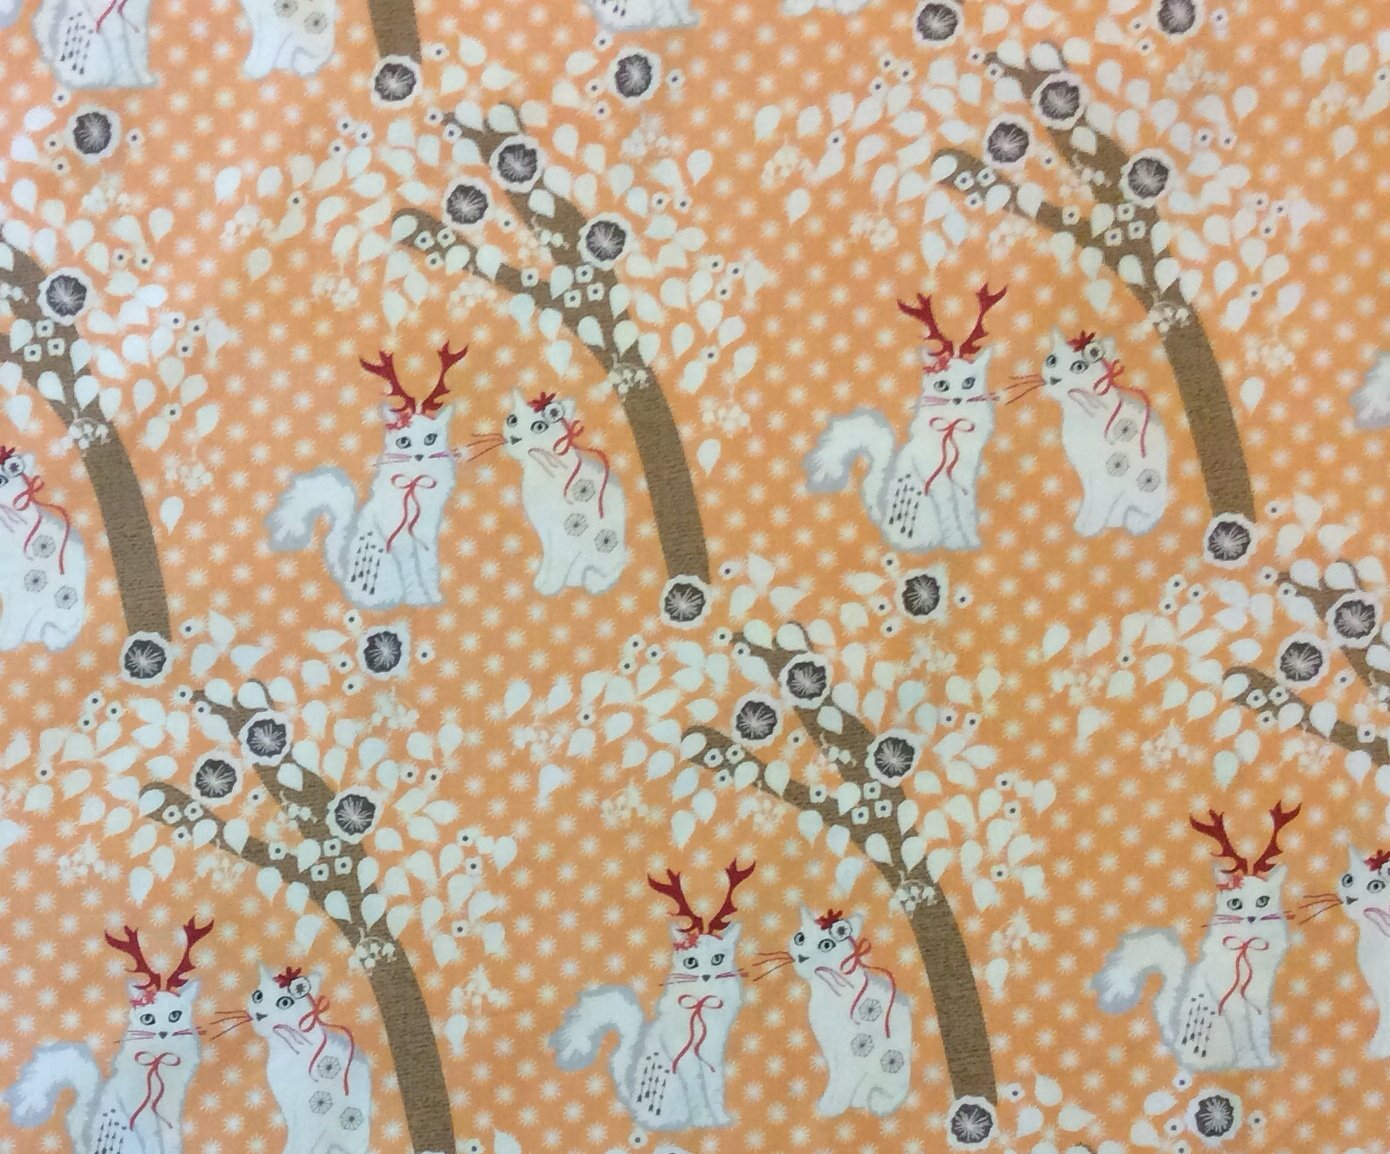 MM76 Cats Deer Antler Asian Cute Spring Winter Cute Quilting Cotton Fabric